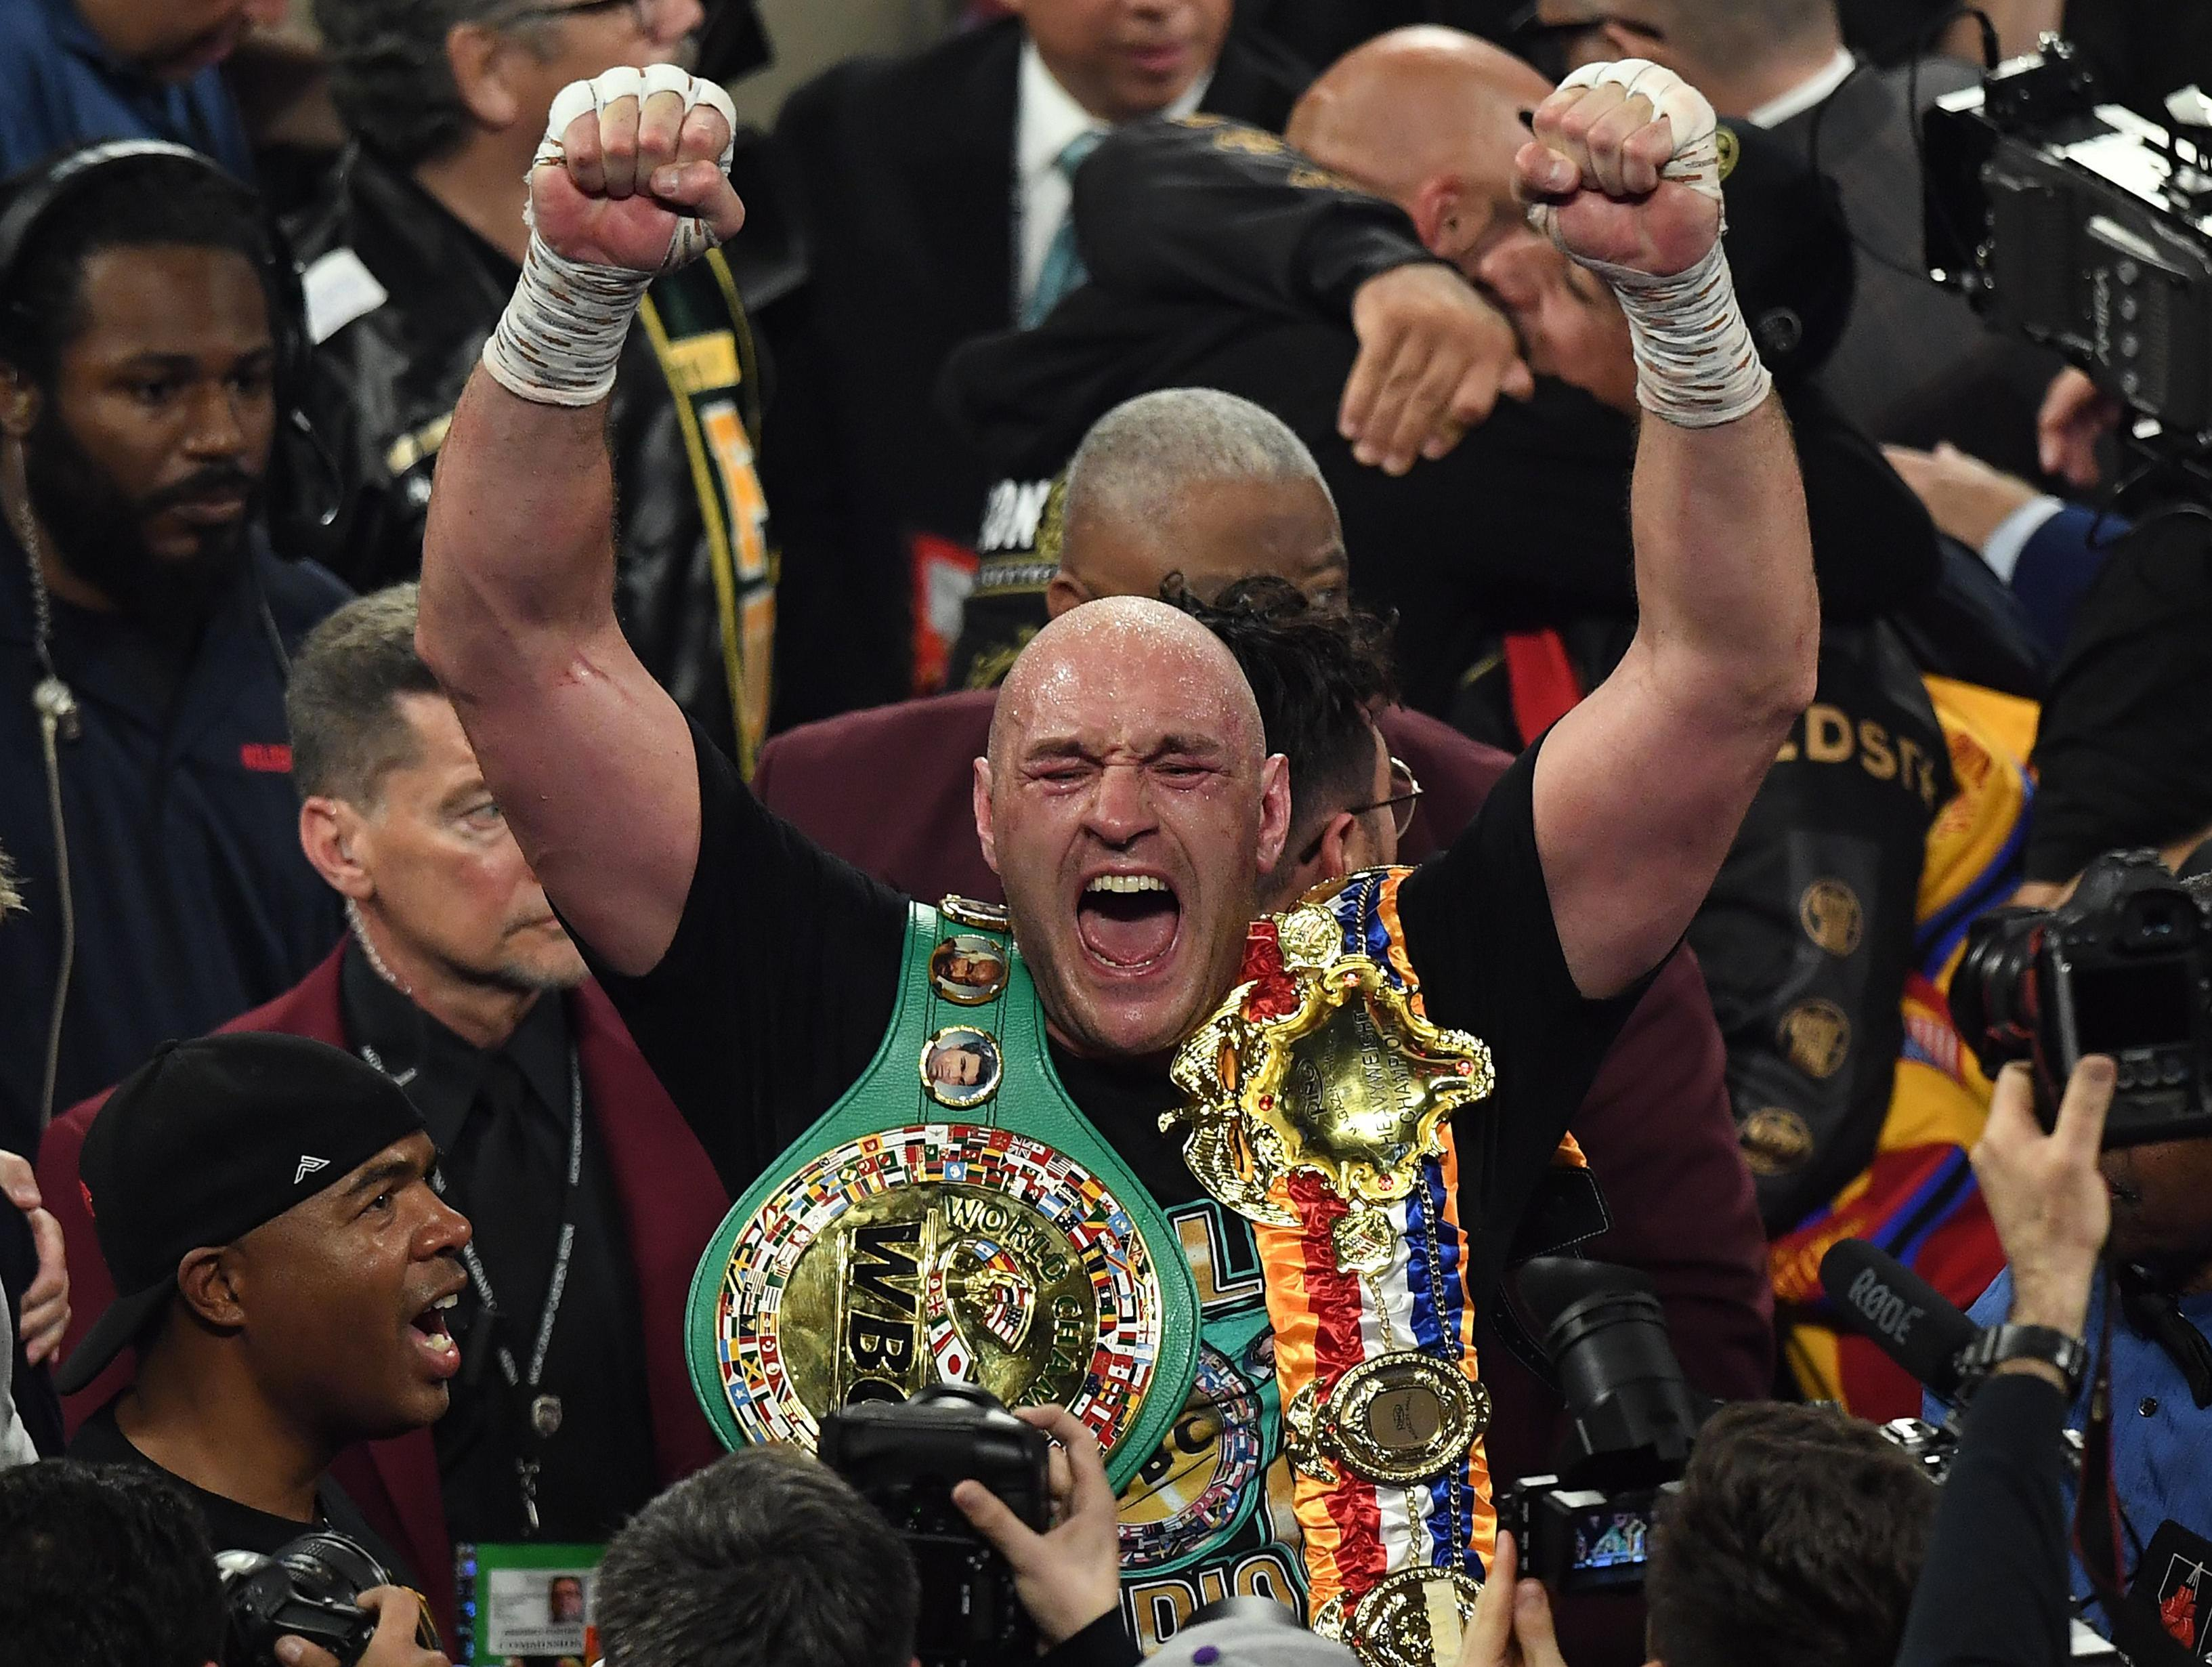 Sweet-as-pie performance earns Tyson Fury respect as world's best